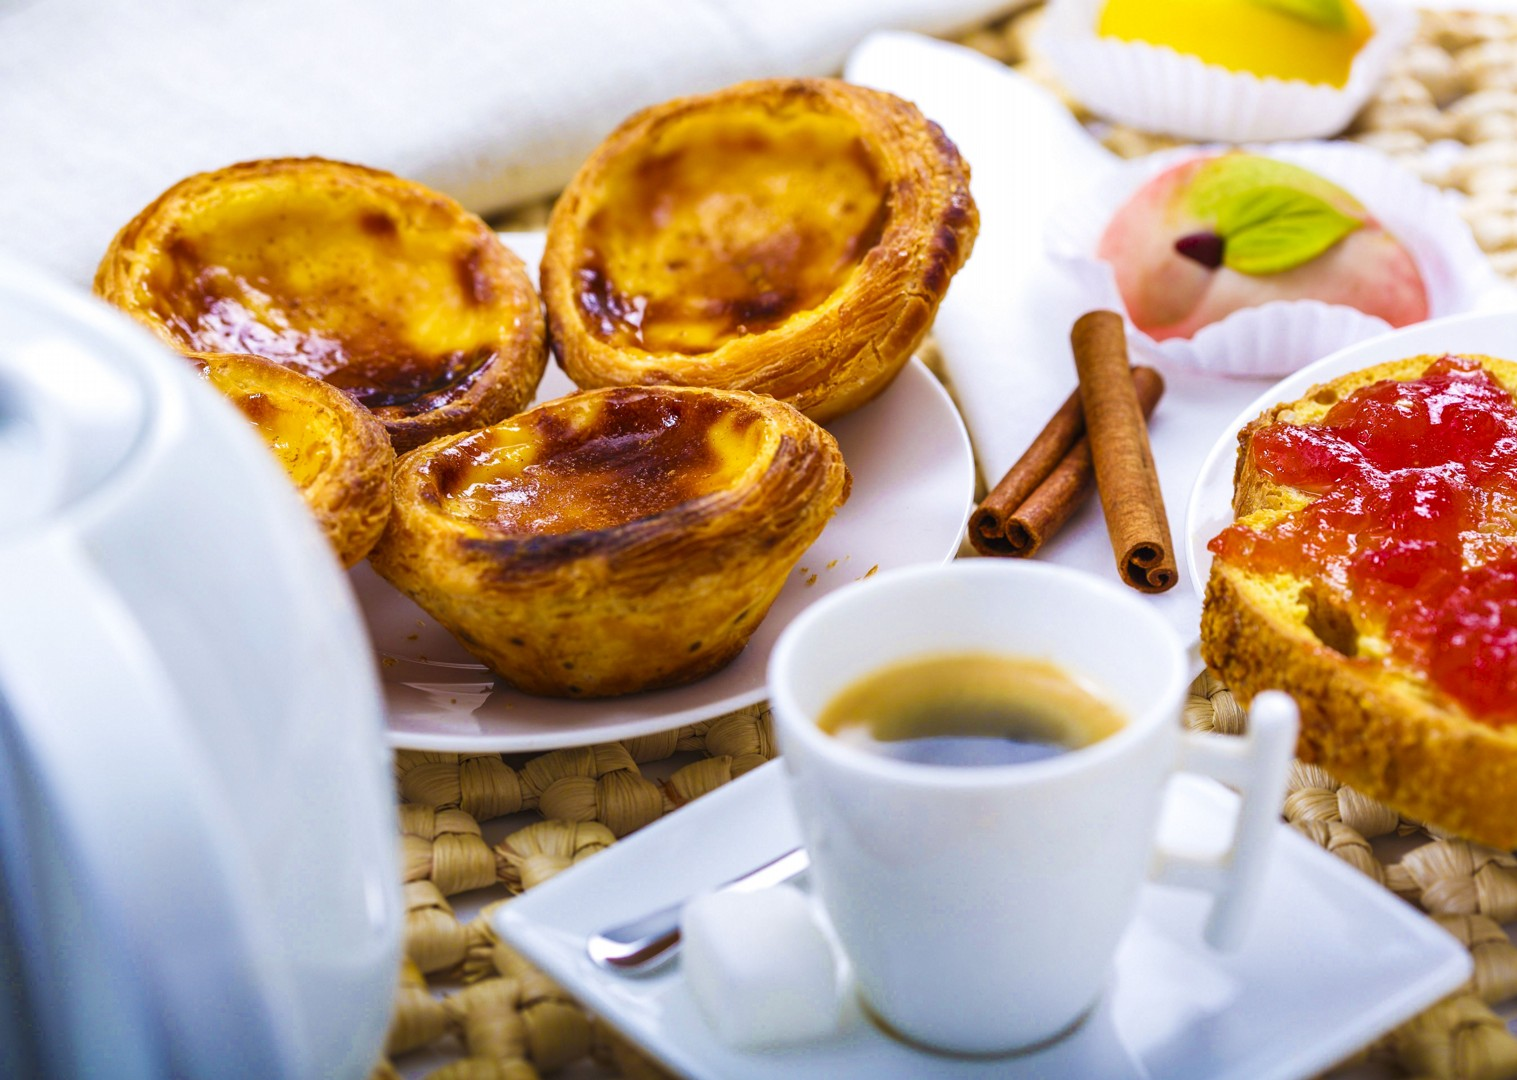 local-delicacies-portugal-pastel-de-nata-food-cycling-tour.jpg - Portugal - Port and Wine - Guided Leisure Cycling Holiday - Leisure Cycling